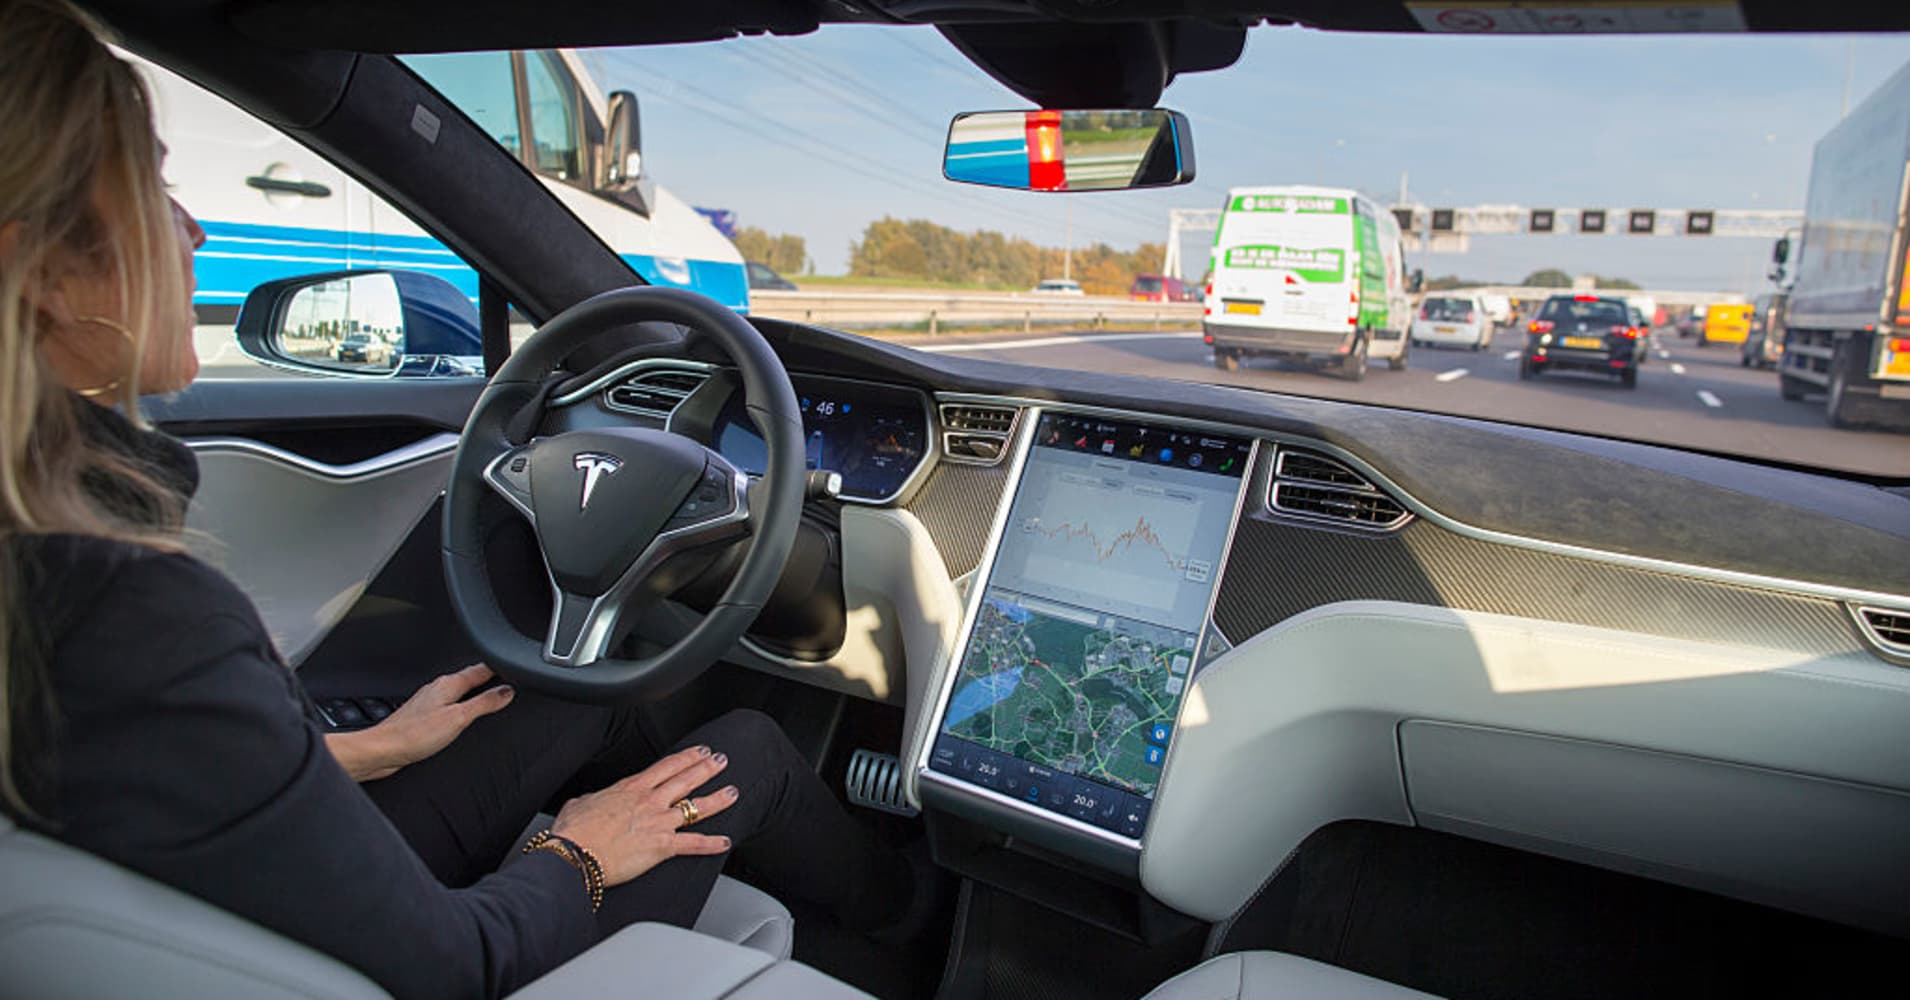 Applications For Self Driving Cars In Healthcare